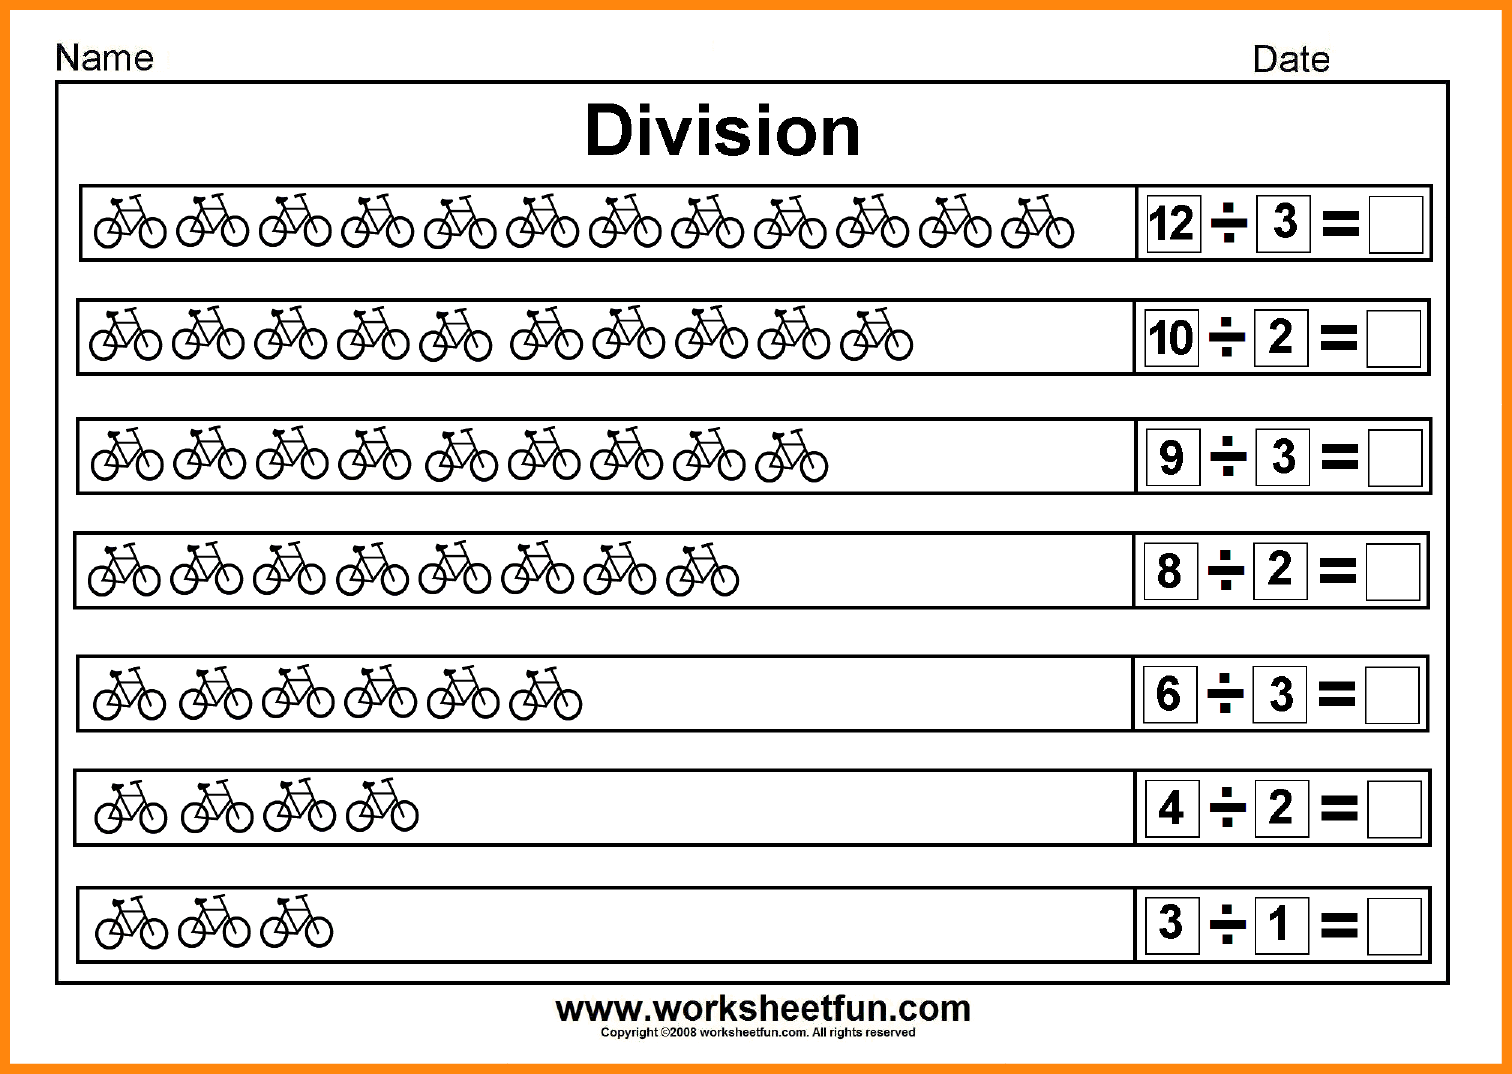 Cell Division Vocabulary Worksheet Answers